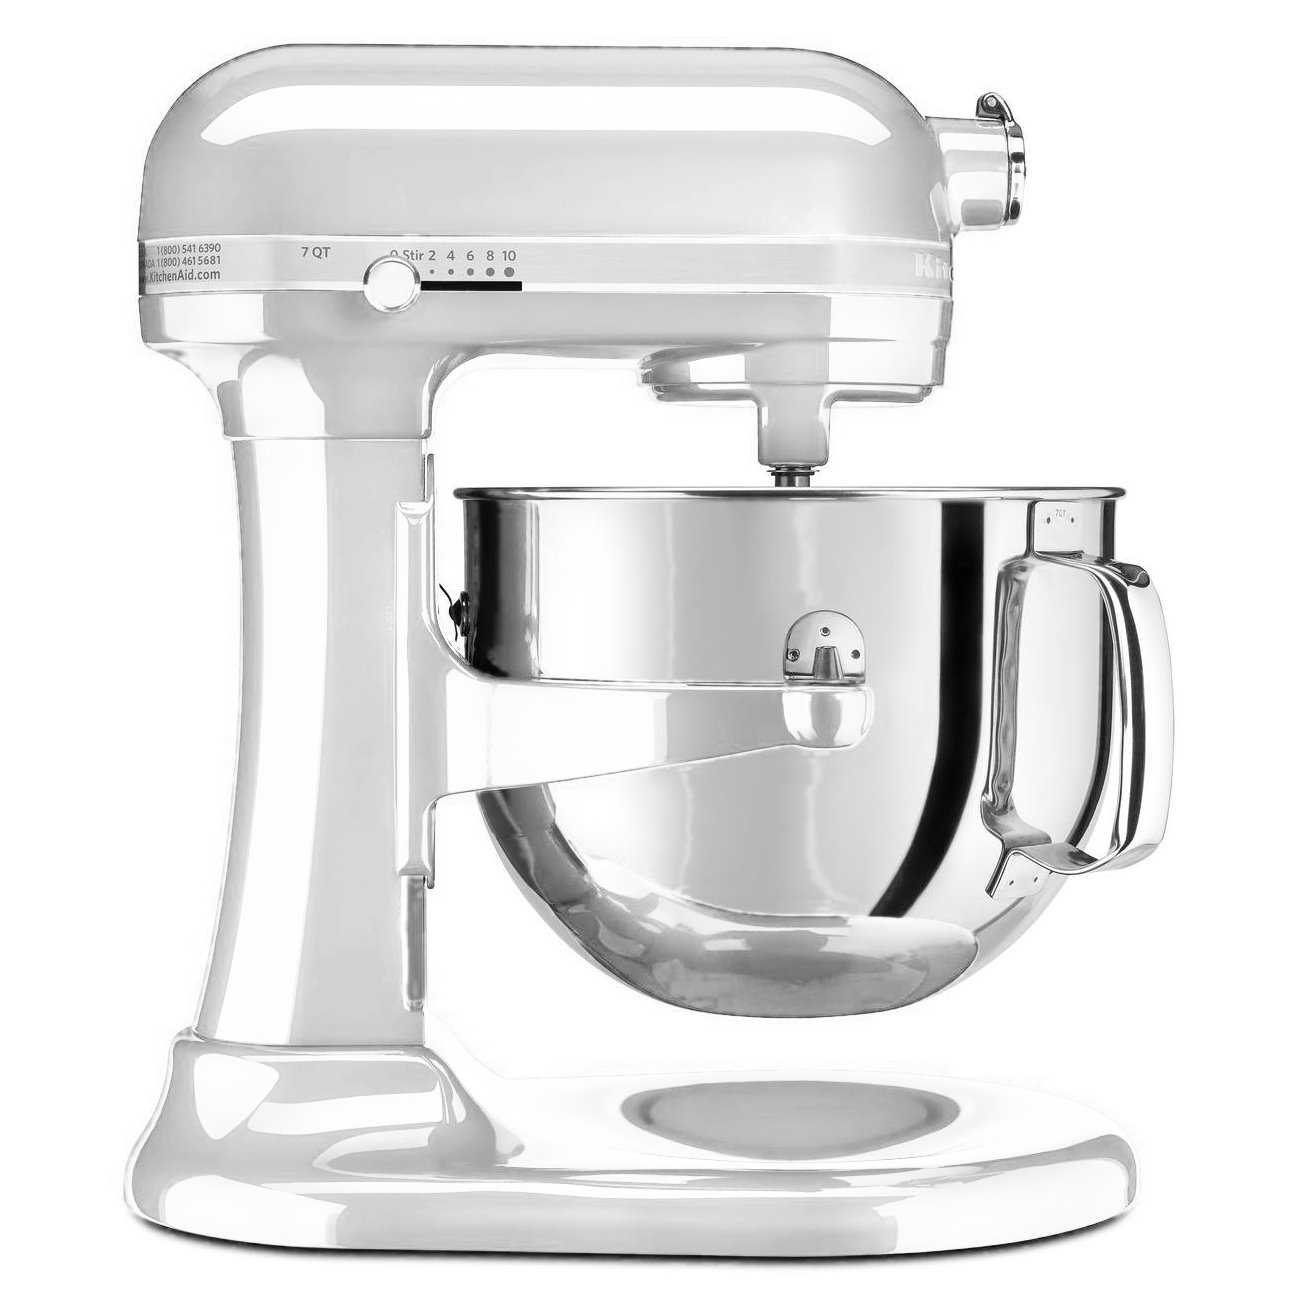 Amazon.com: KitchenAid 7-Quart Bowl Lift Stand Mixer (Imperial White ...